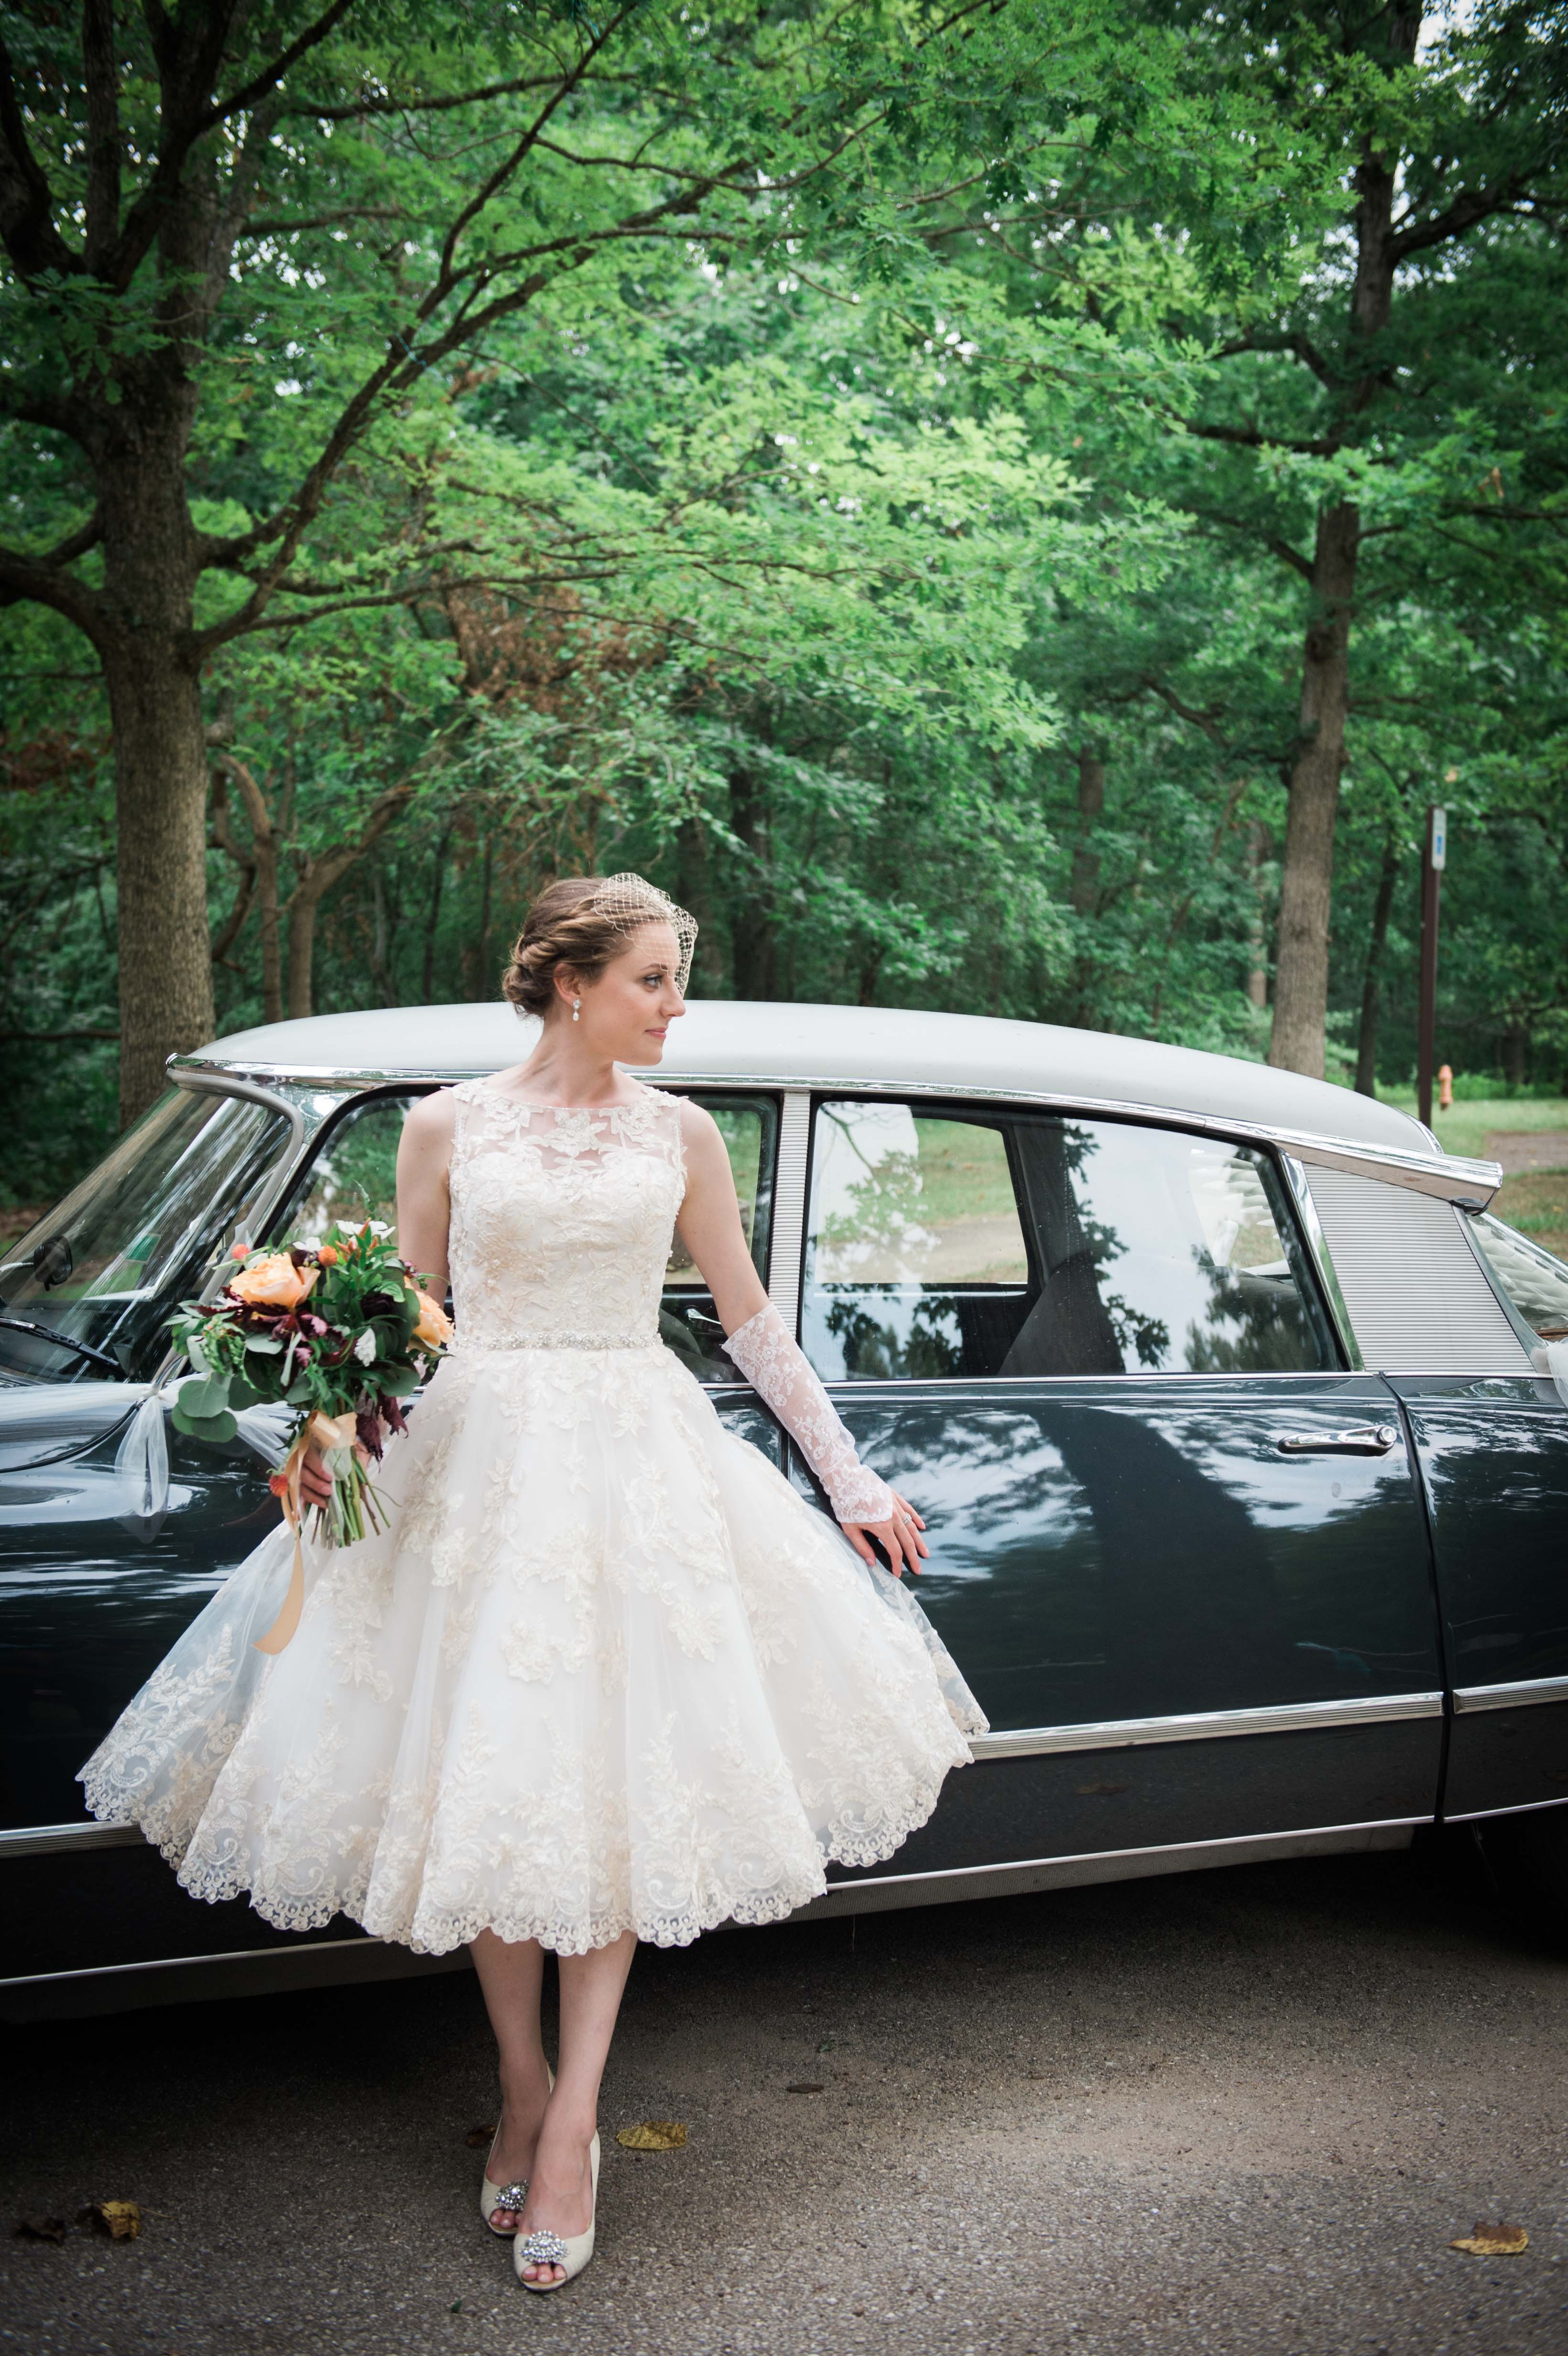 Bride leaning on vintage car